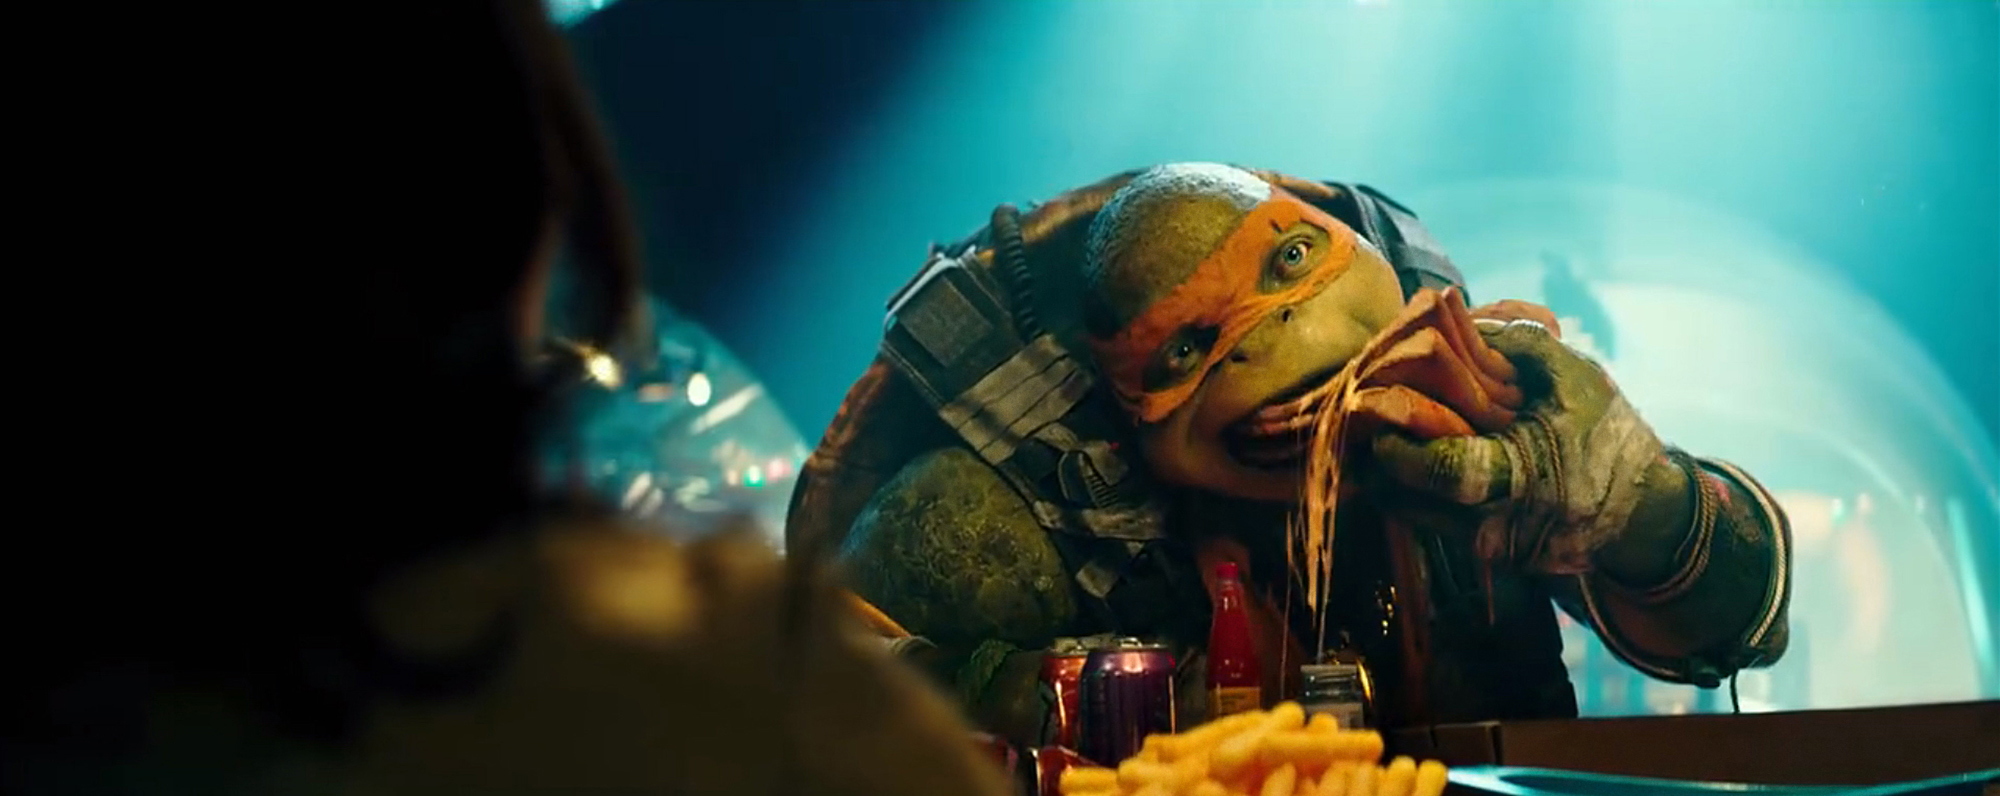 Michelangelo in Teenage Mutant Ninja Turtles: Out of the Shadows from Paramount Pictures, Nickelodeon Movies and Platinum Dunes